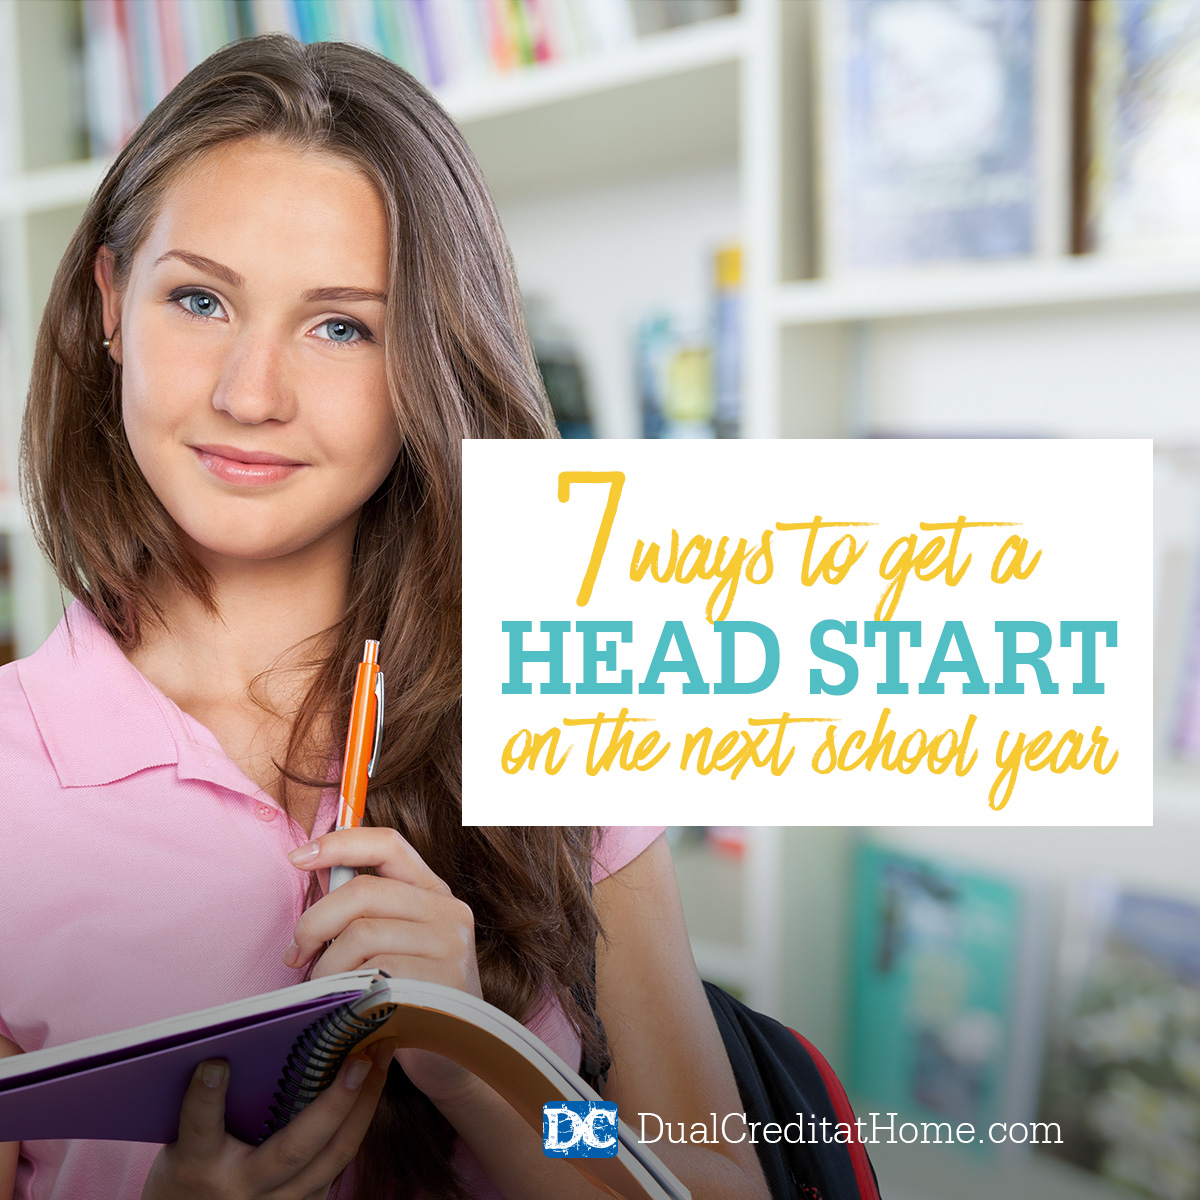 7 Ways to Get a Head Start on the Next School Year